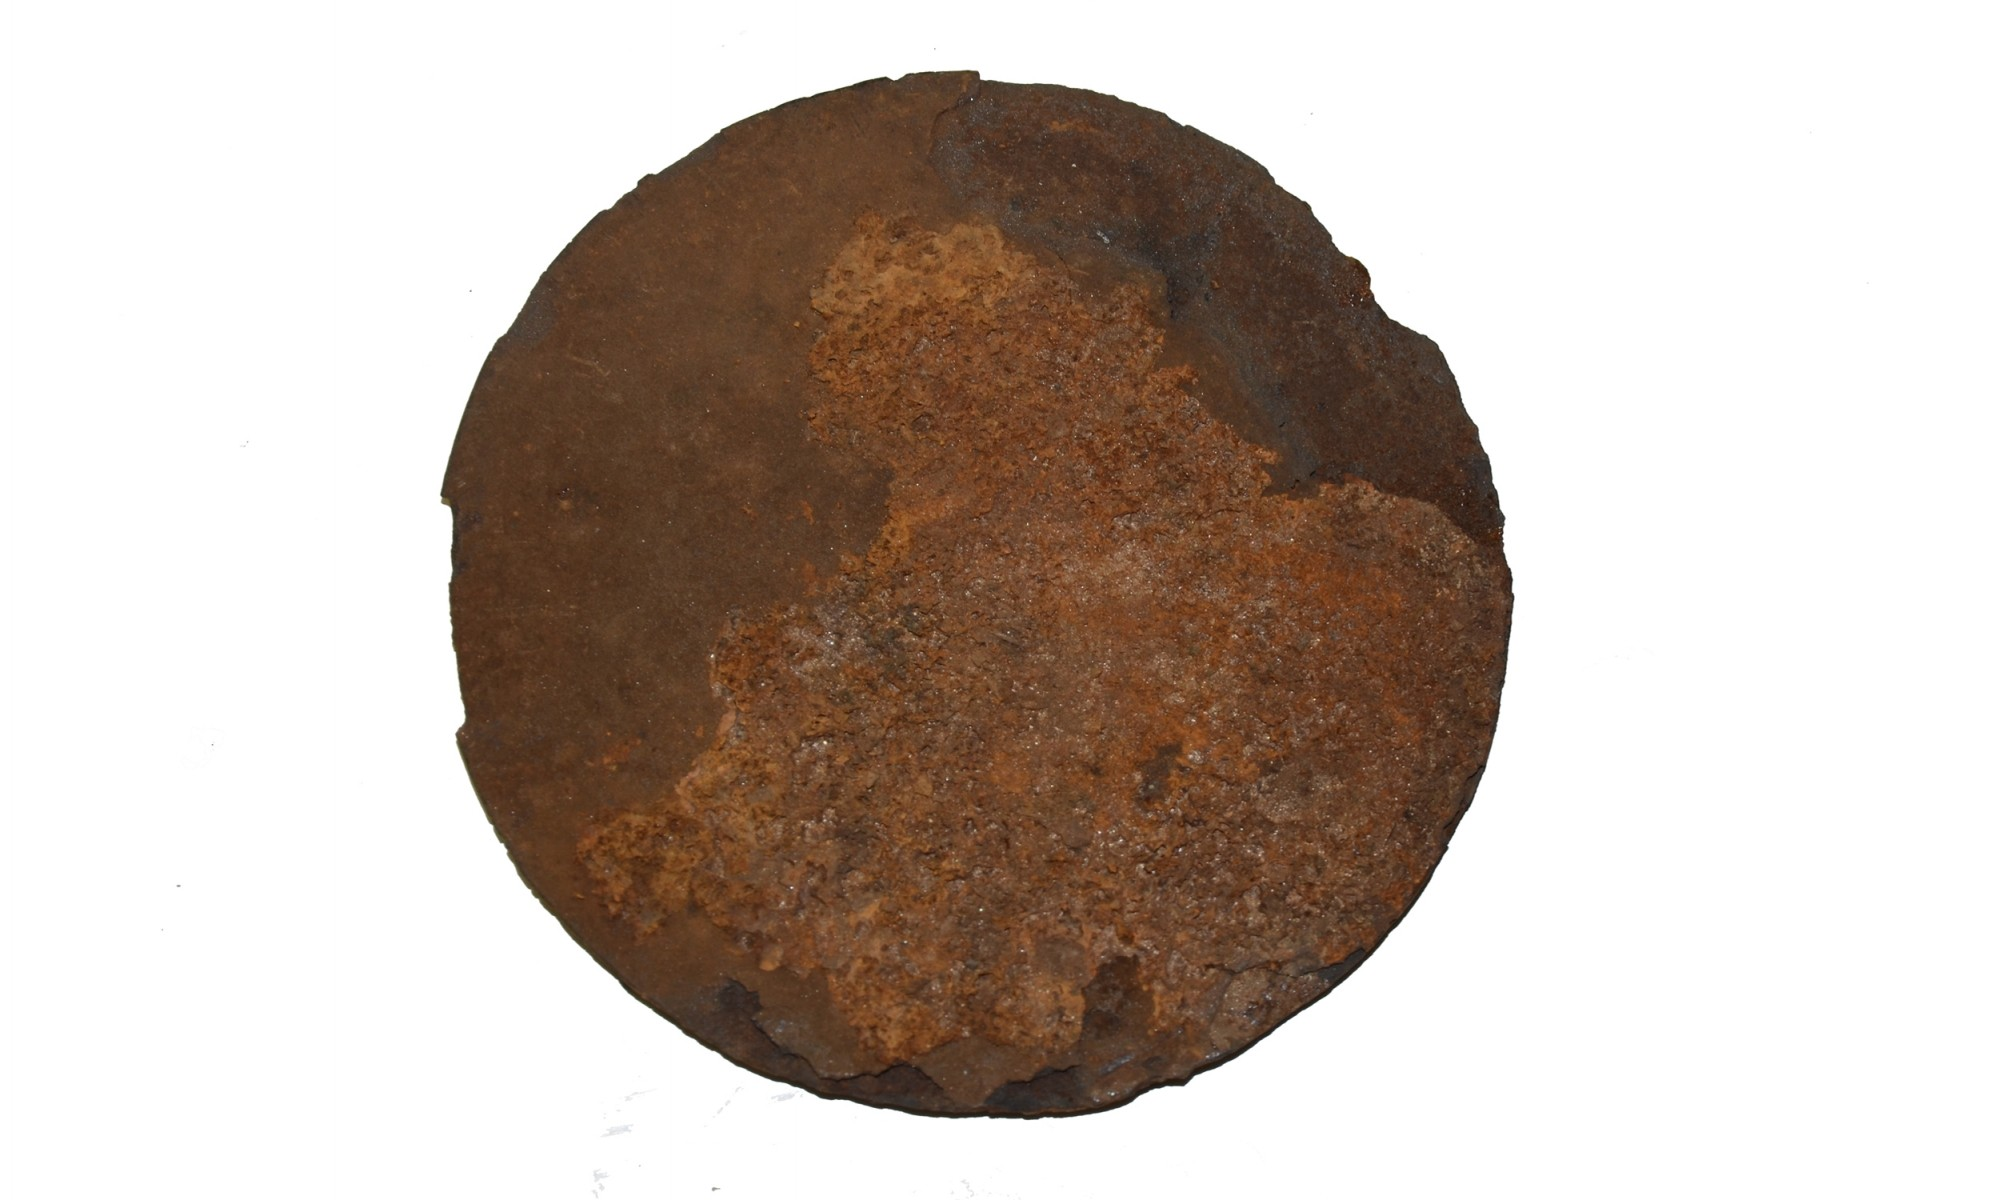 CONFEDERATE 6-INCH CANISTER PLATE RECOVERED AT ATLANTA